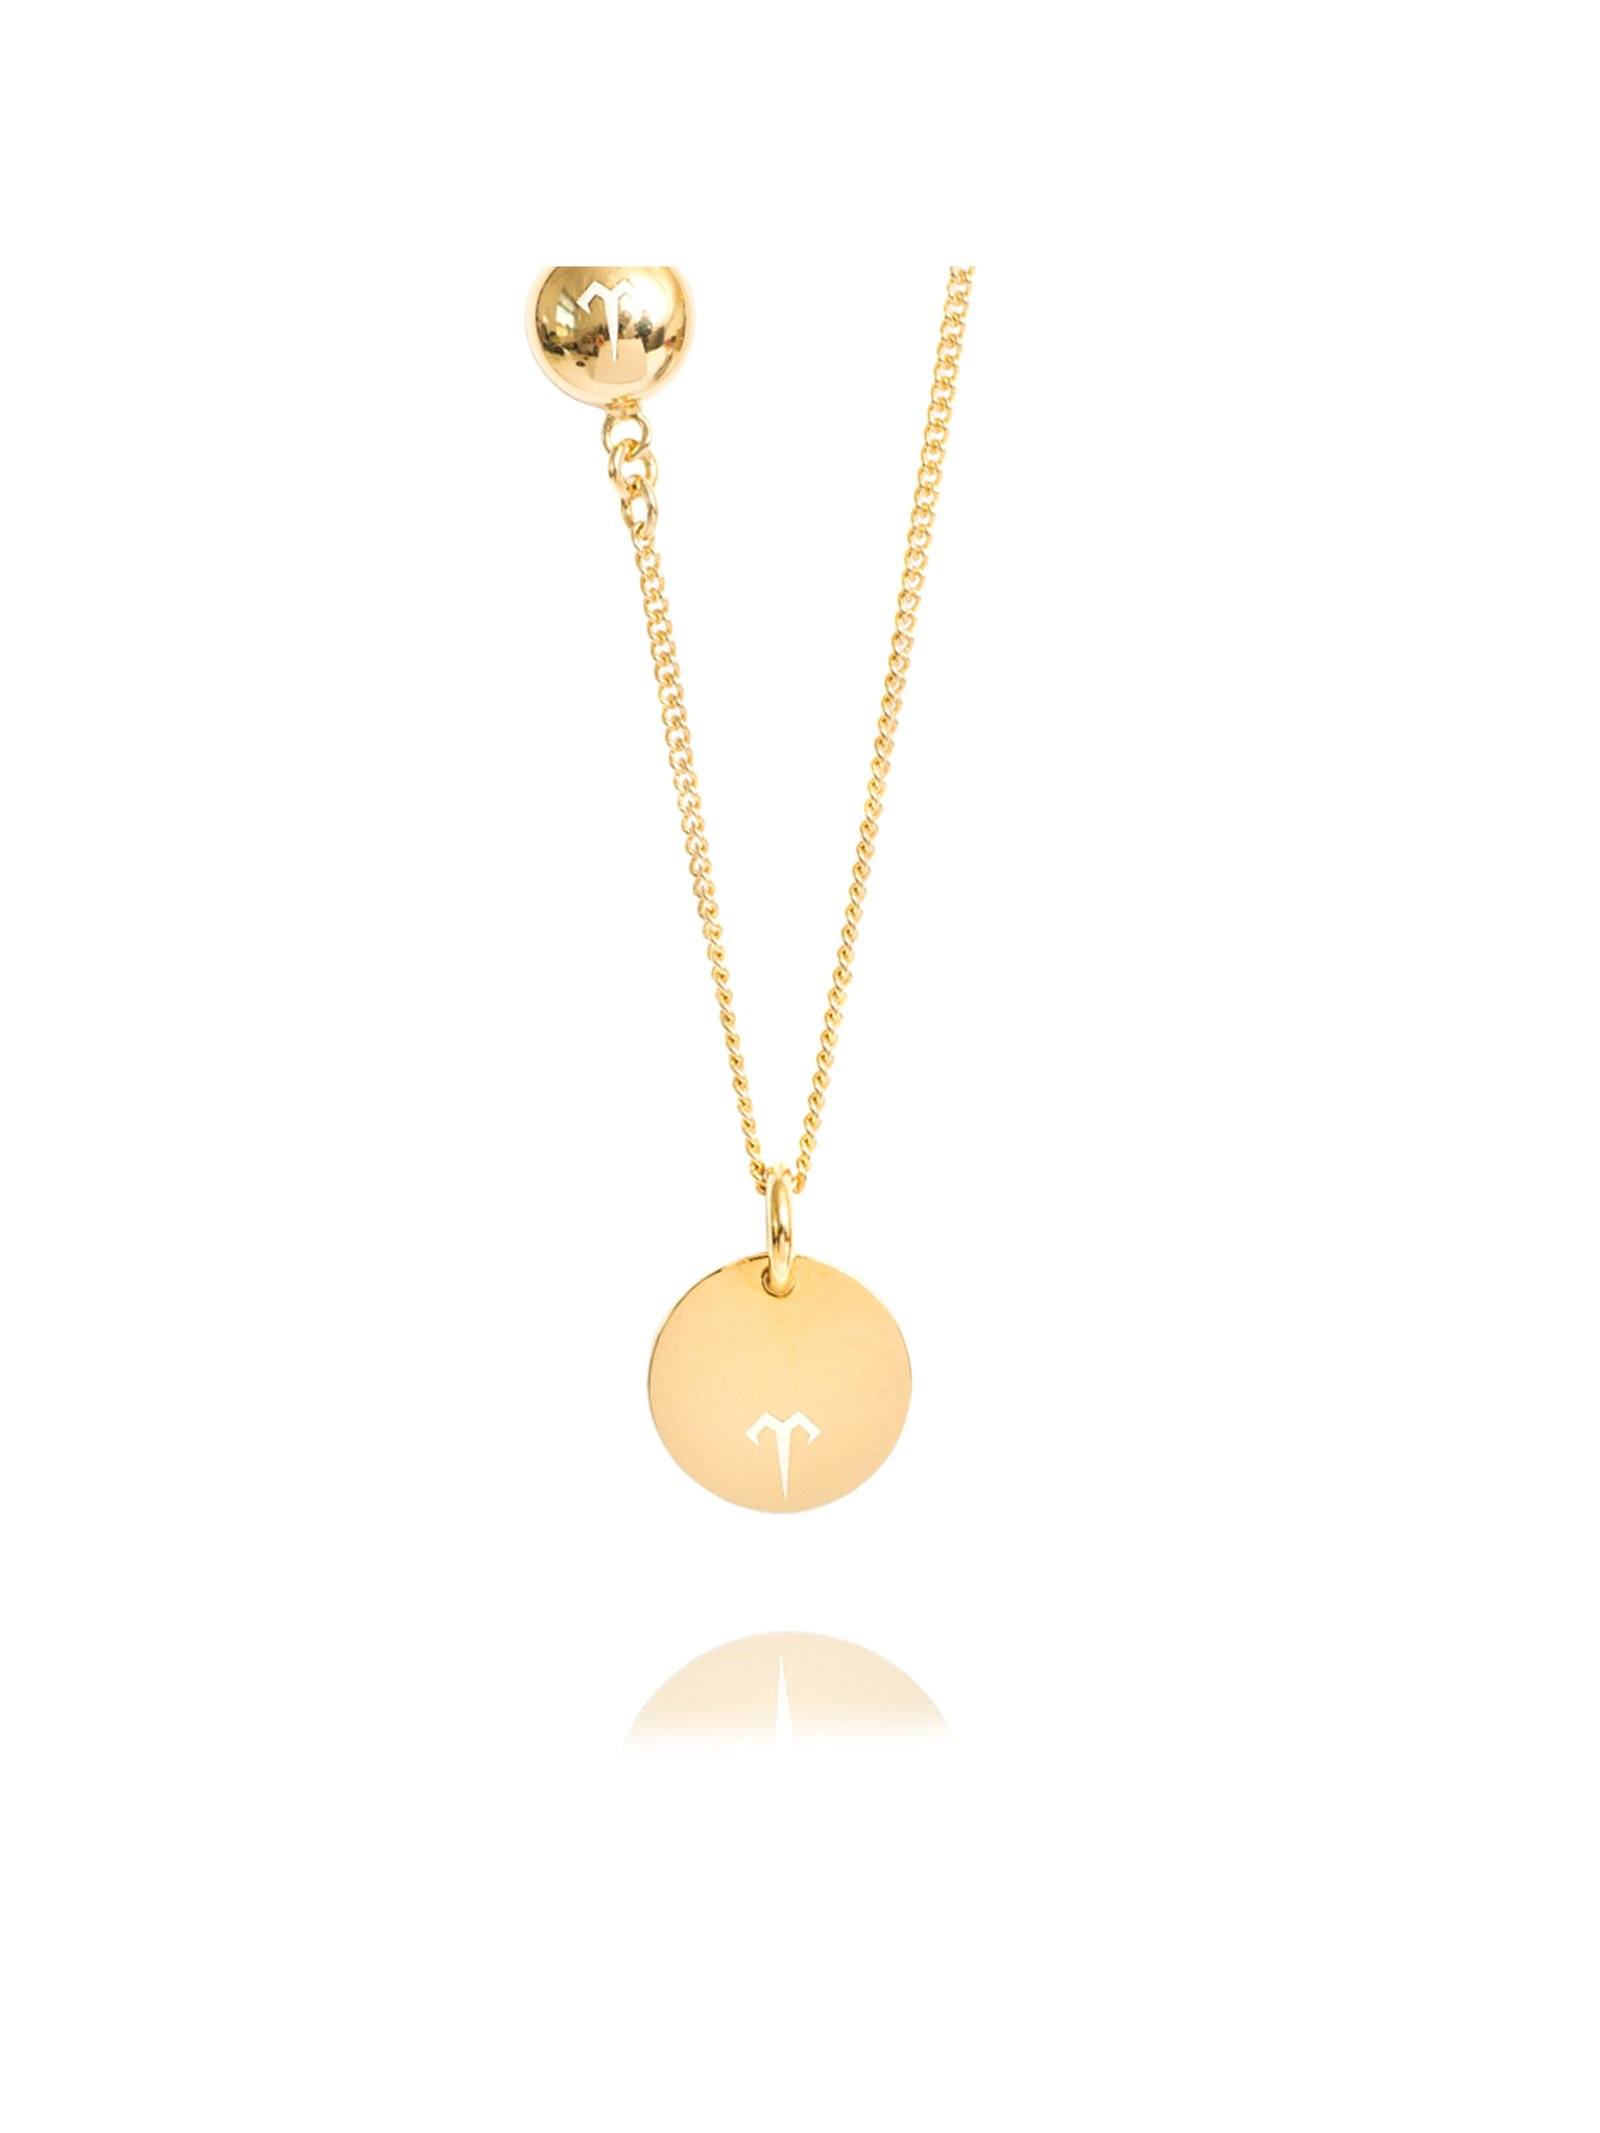 Ternary London SMALL COIN PENDANT NECKLACE GOLD